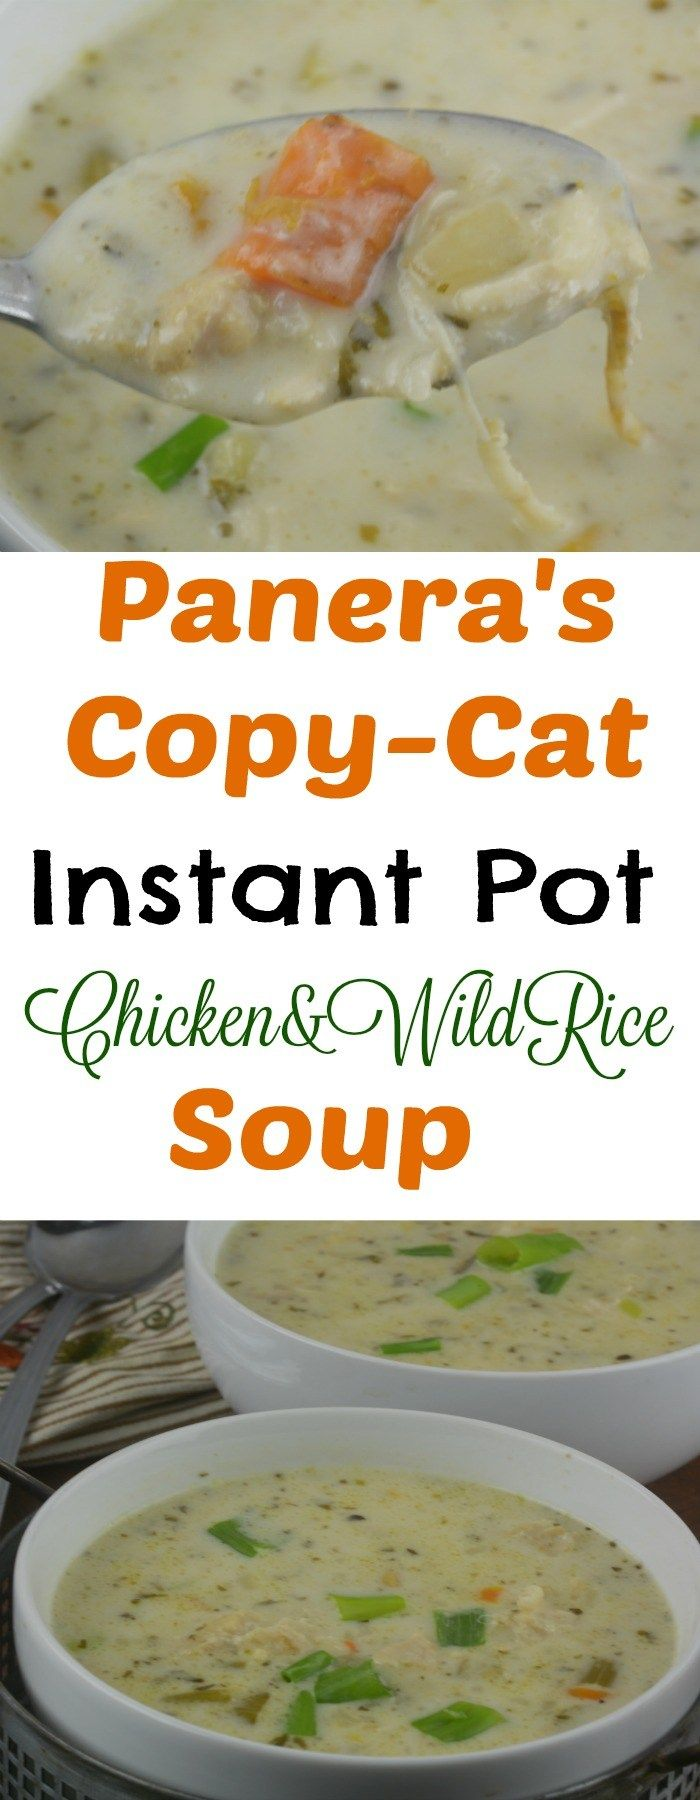 Panera's Copy-cat Instant Pot Chicken and Wild Rice Soup